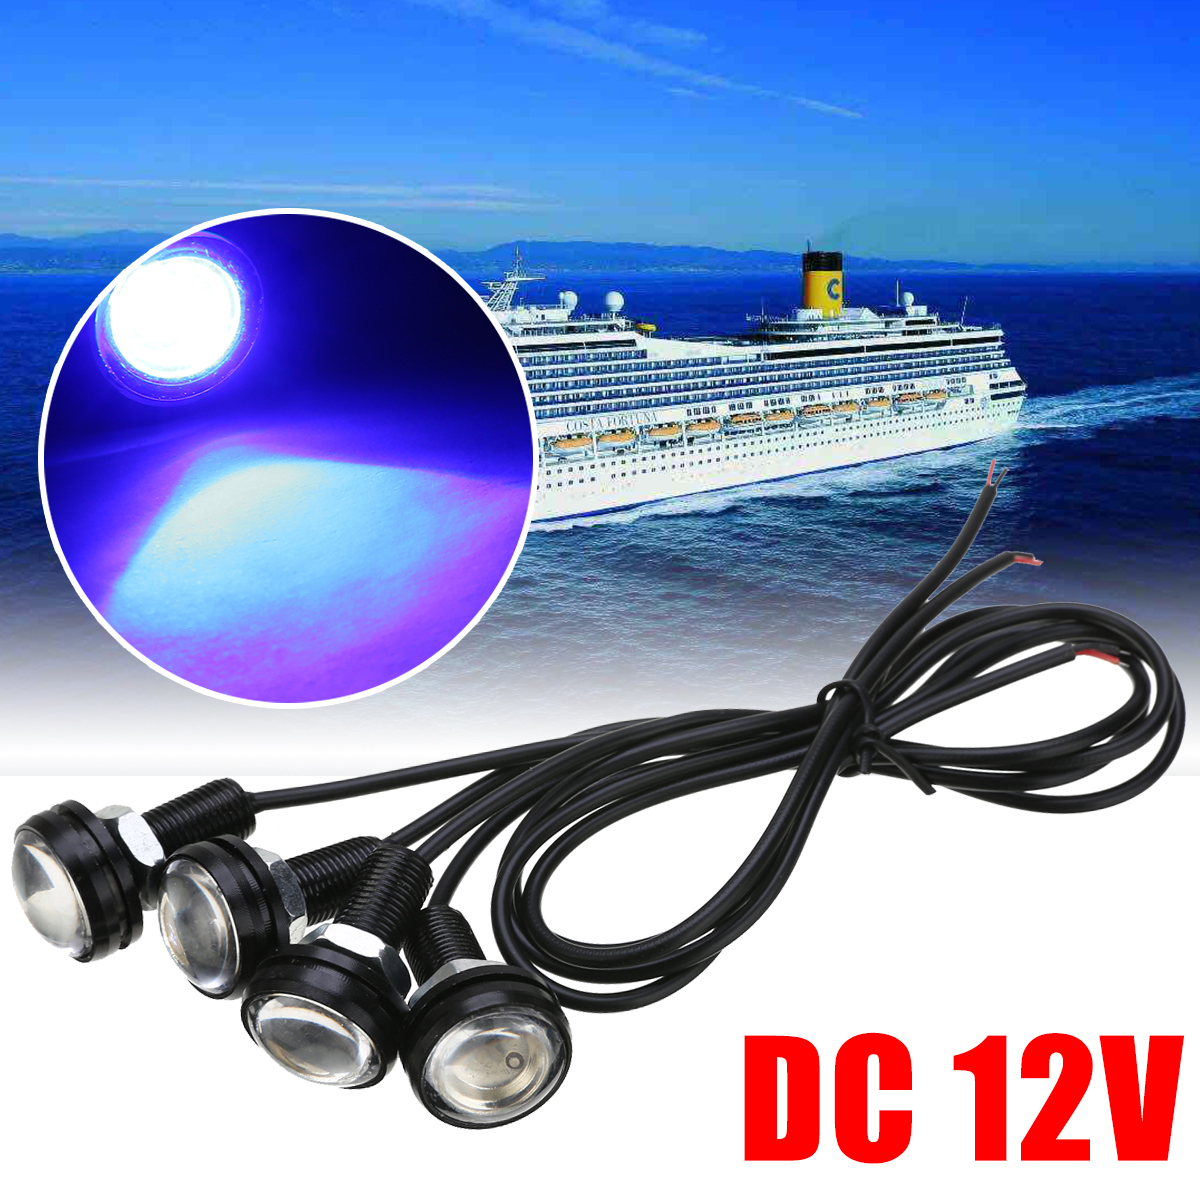 For Marine Boat Lights 4pcs 12V 3W Blue LED Boat Light Waterproof Outrigger Spreader Transom Underwater Fish Signal Lamp